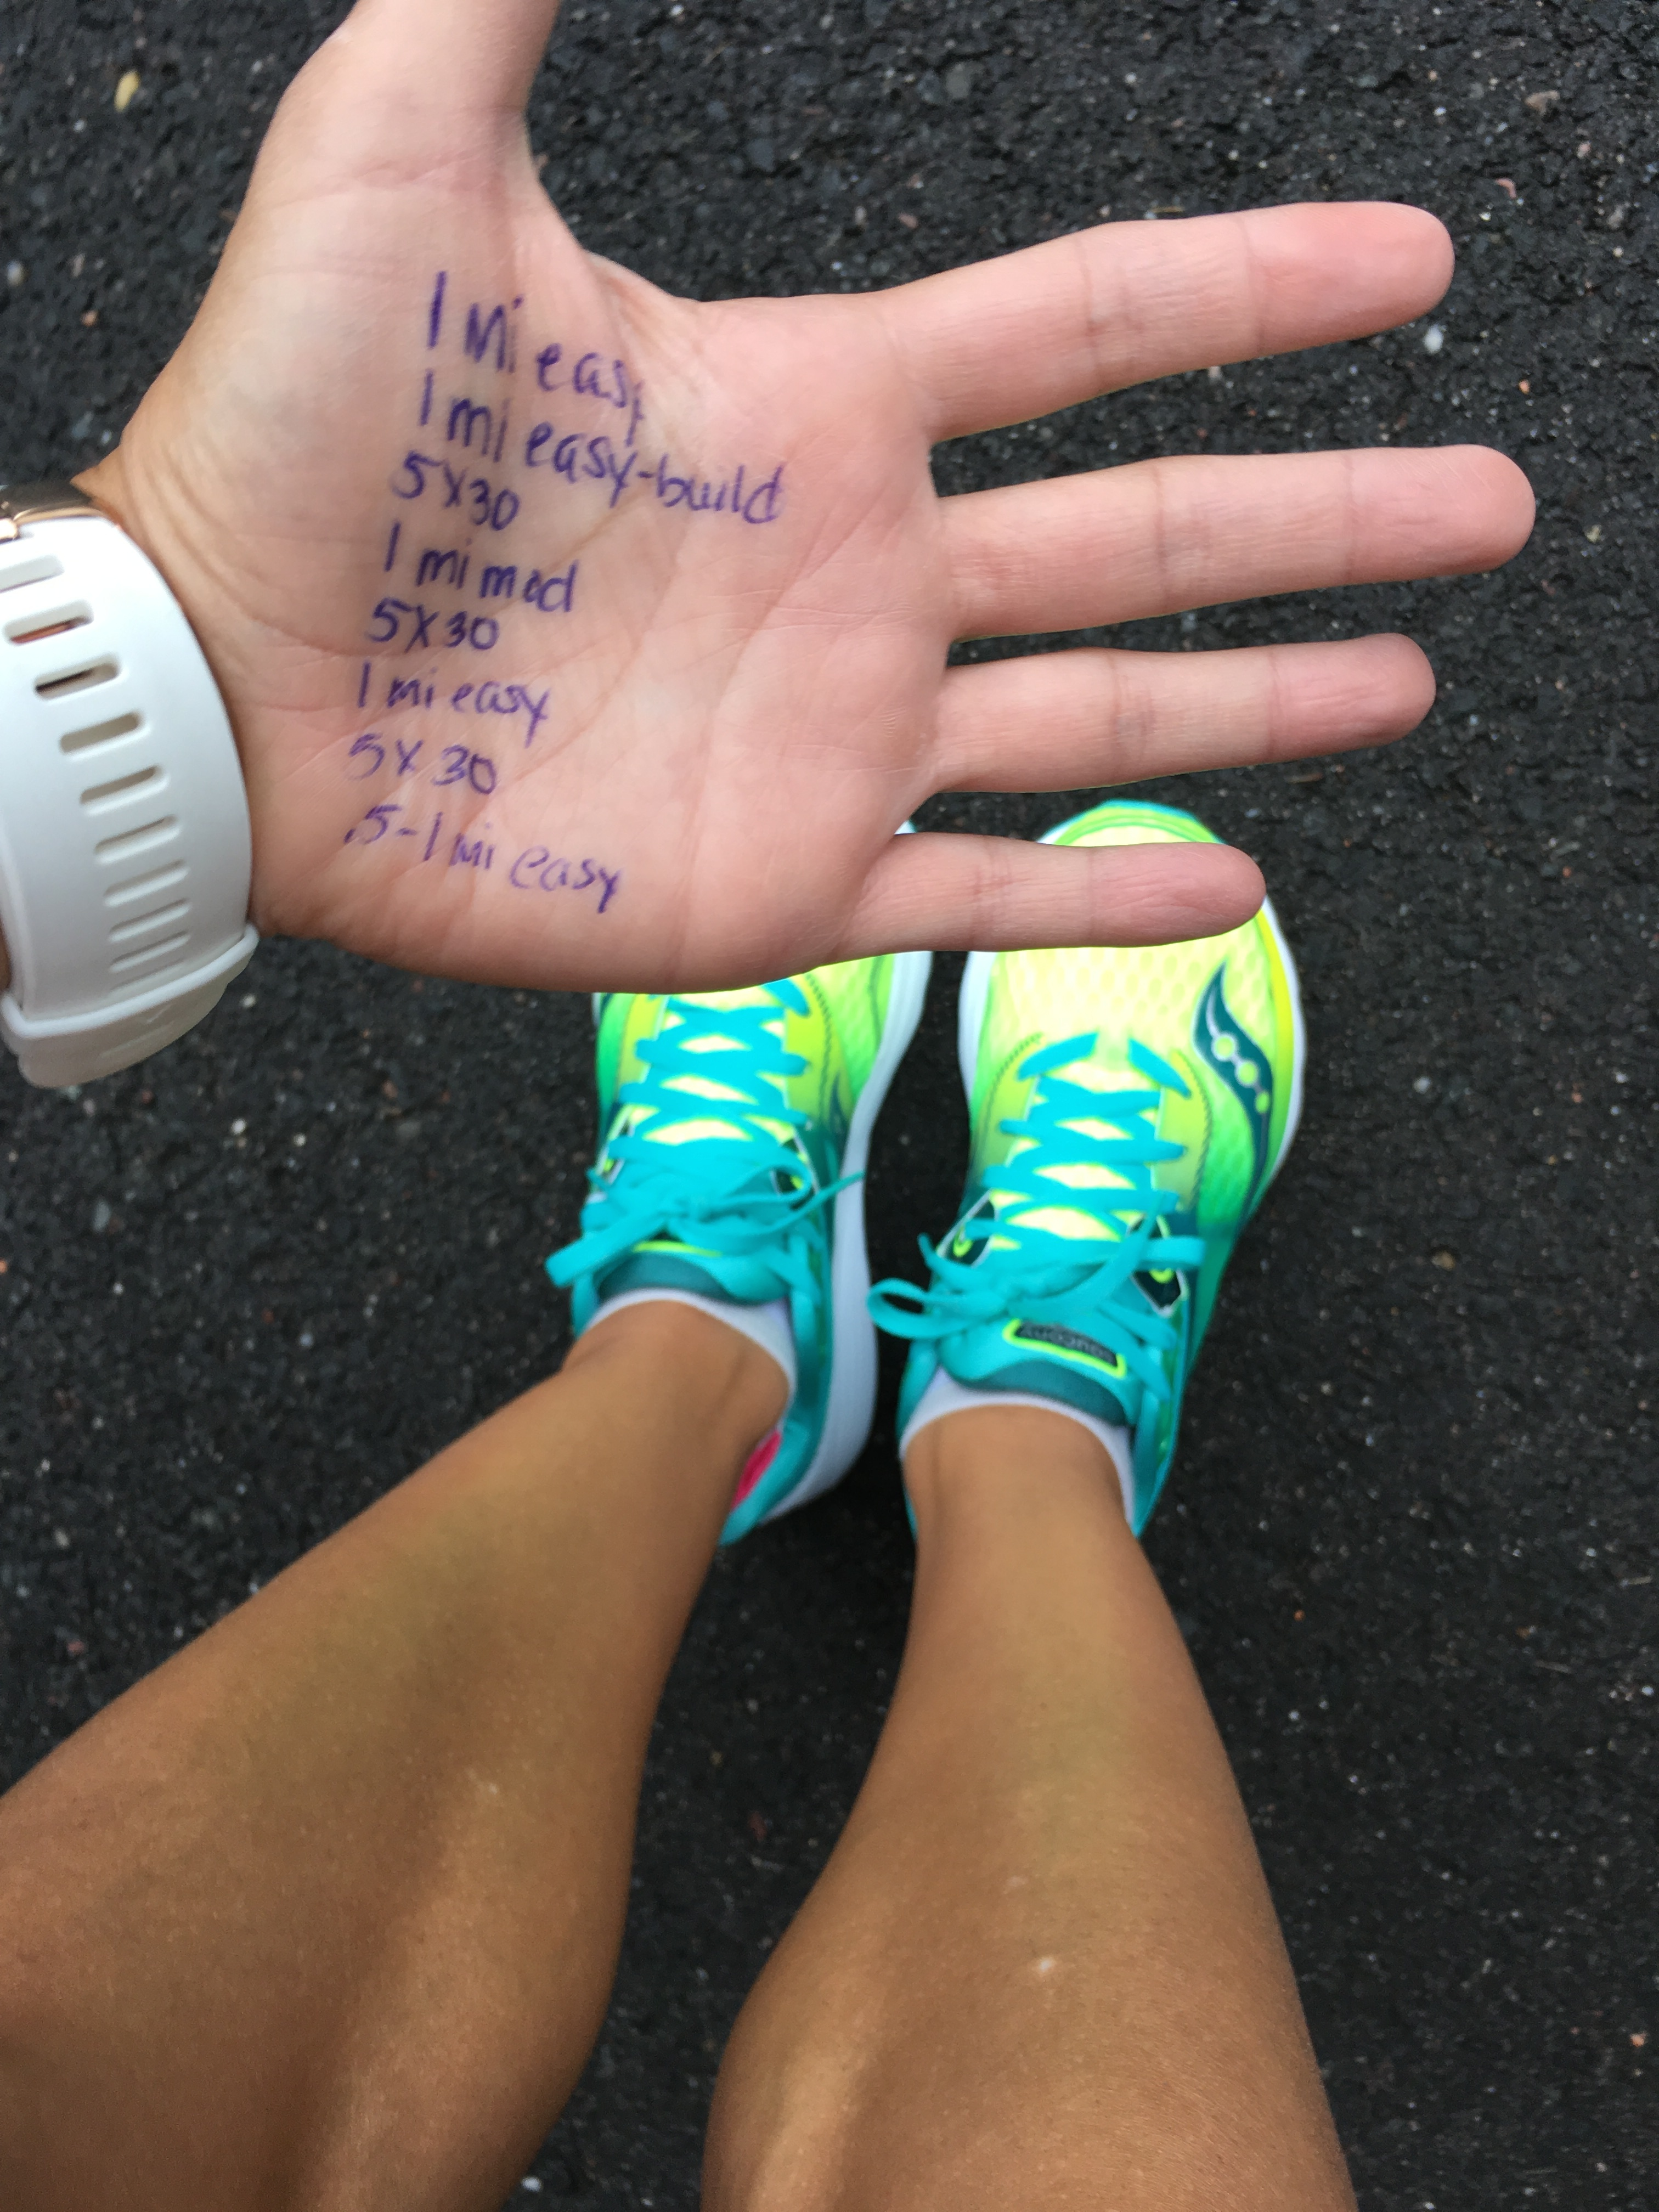 Yes, I needed to write my workout on my hand because I'm old and can't remember stuff.